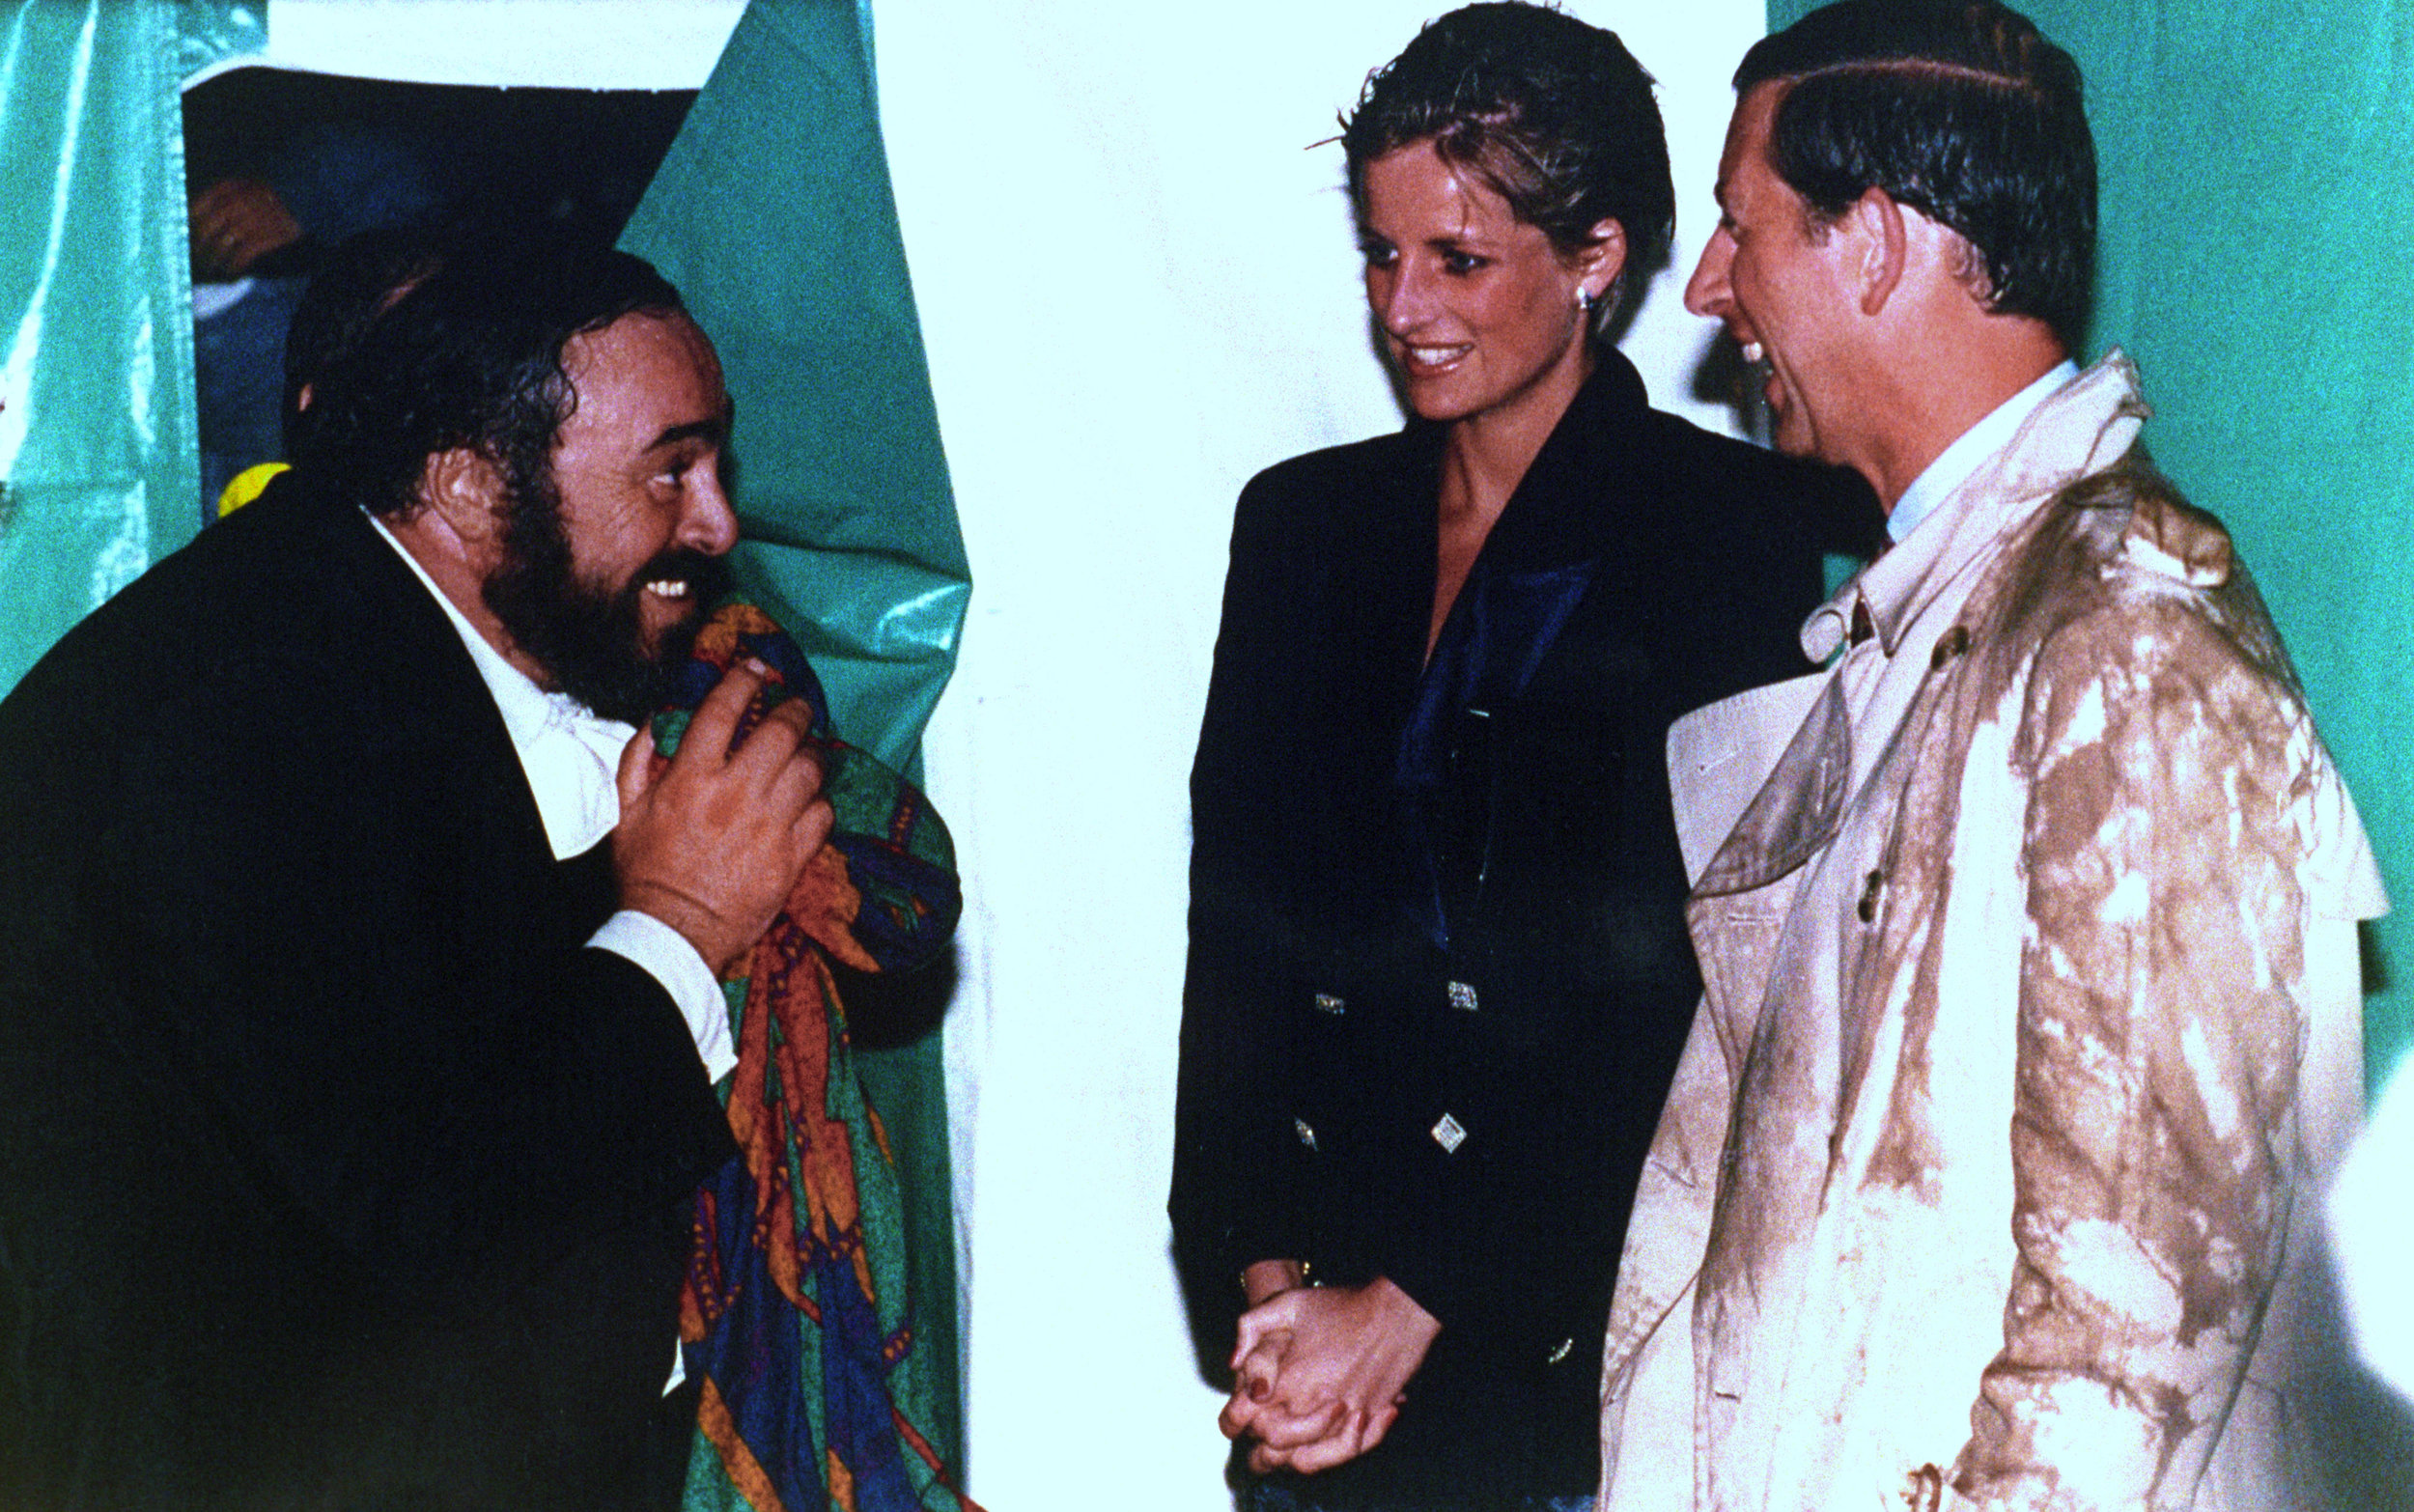 """Tenor Luciano Pavaroti, left, meets a rain-drenched Princess Diana and Prince Charles after an outdoor concert in London, in an image seen in the documentary """"Pavarotti."""" (Photo courtesy of PA Images / Alamy Stock Photo / CBS Films.)"""